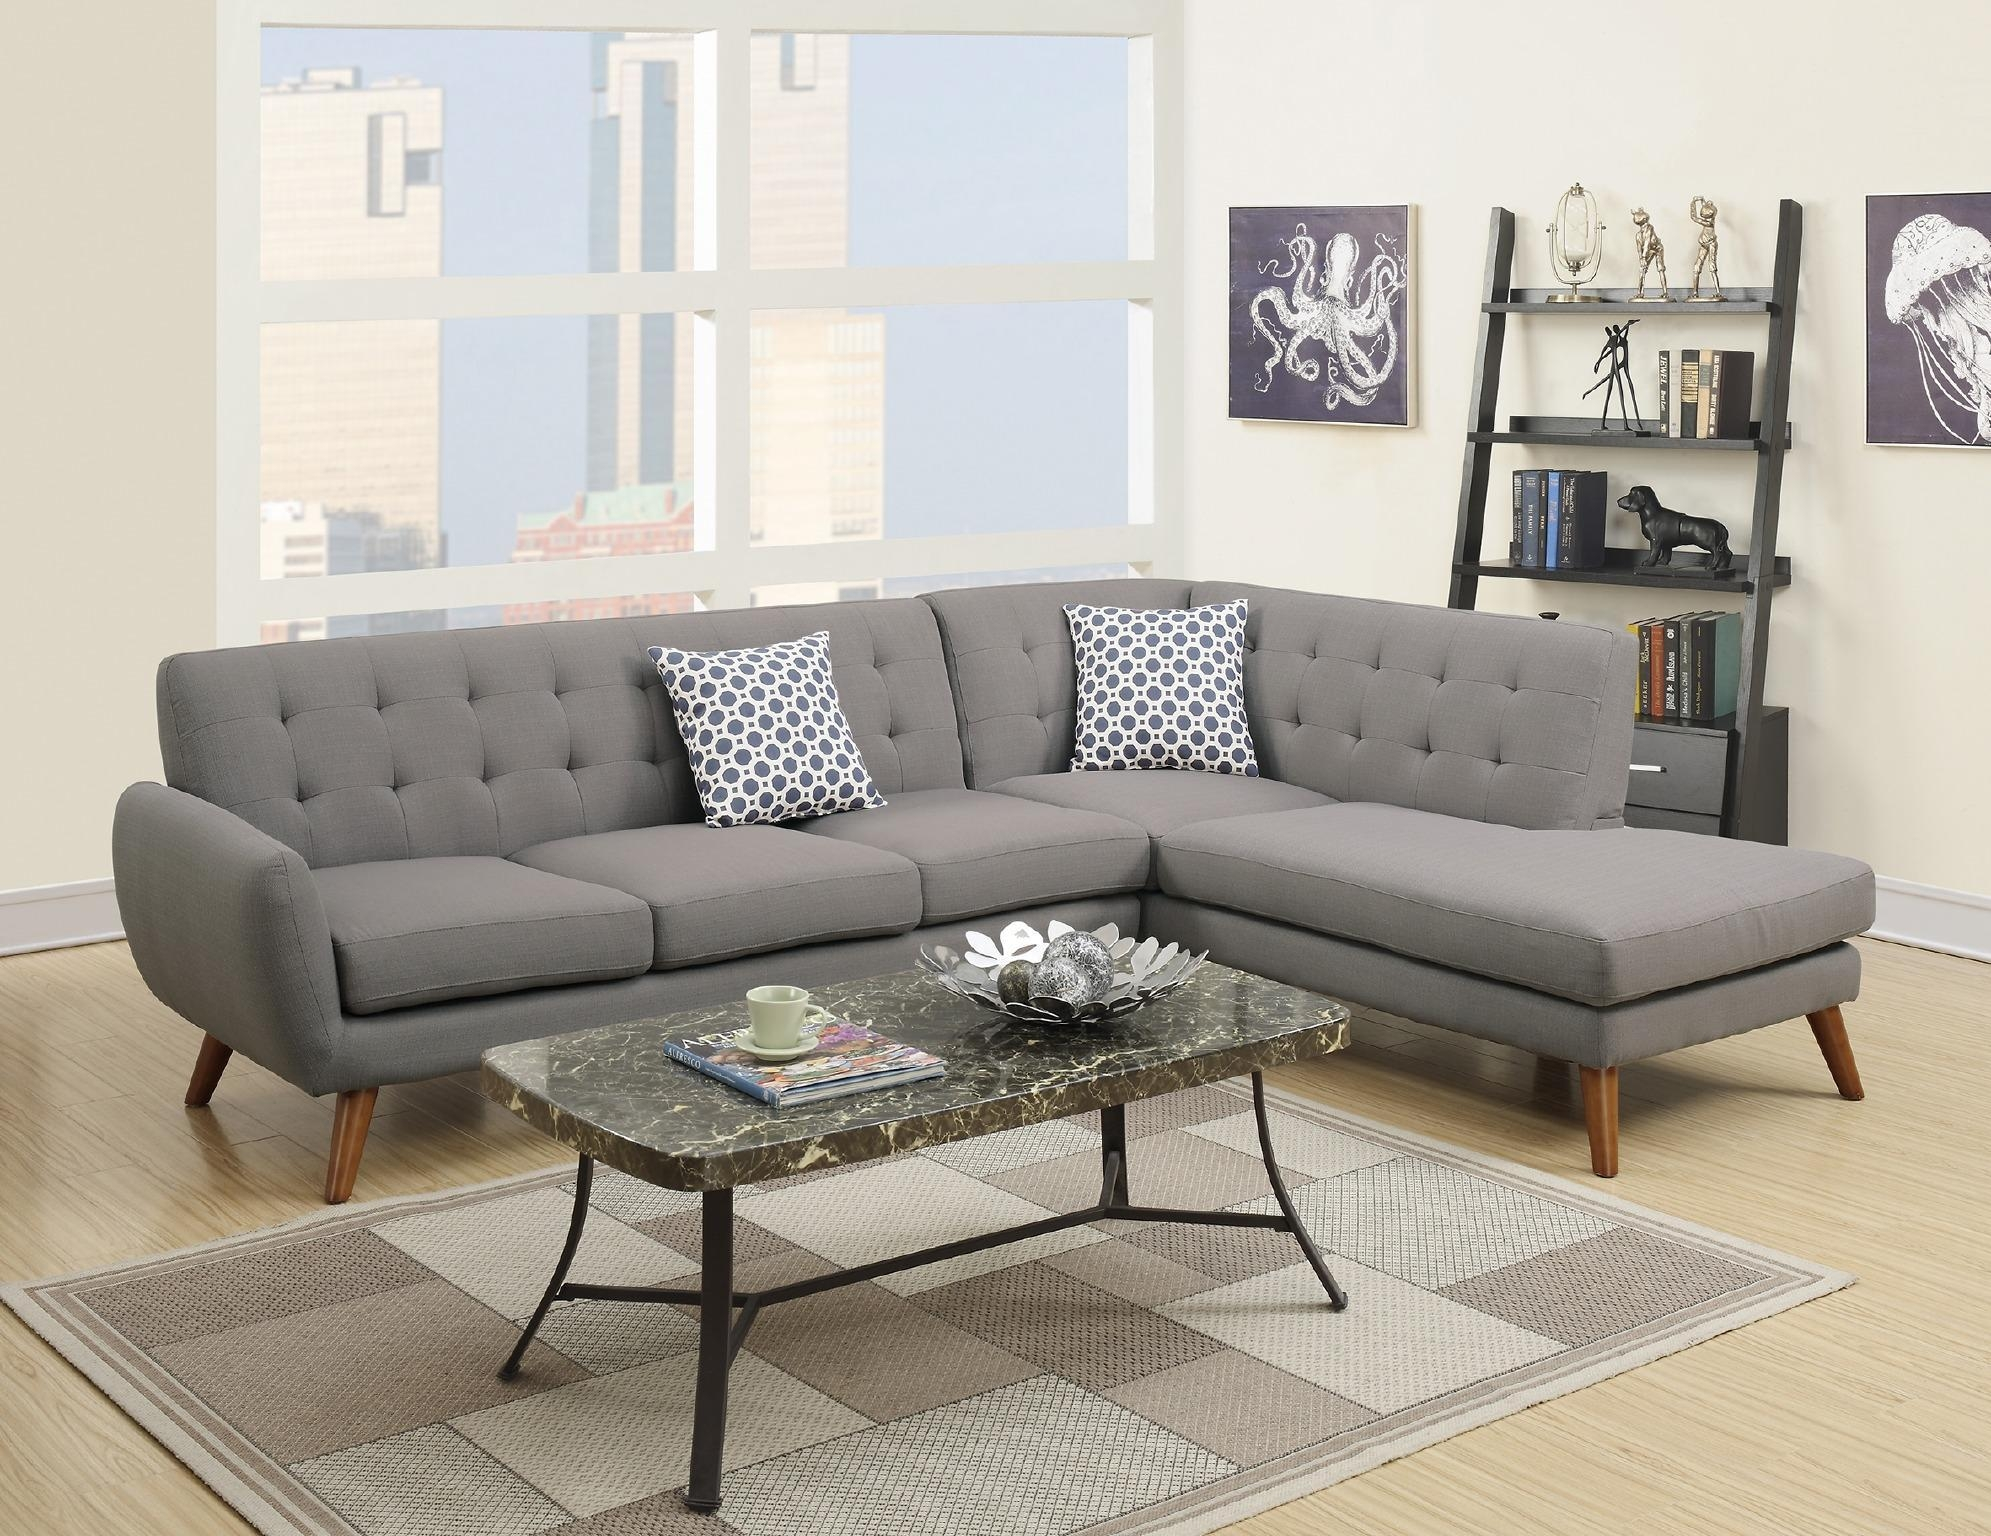 Wayfair, Ifin1345, Amazon, Poundex, F6953, Grey, Sectional, Sofa Regarding Retro Sectional Couch (View 5 of 20)